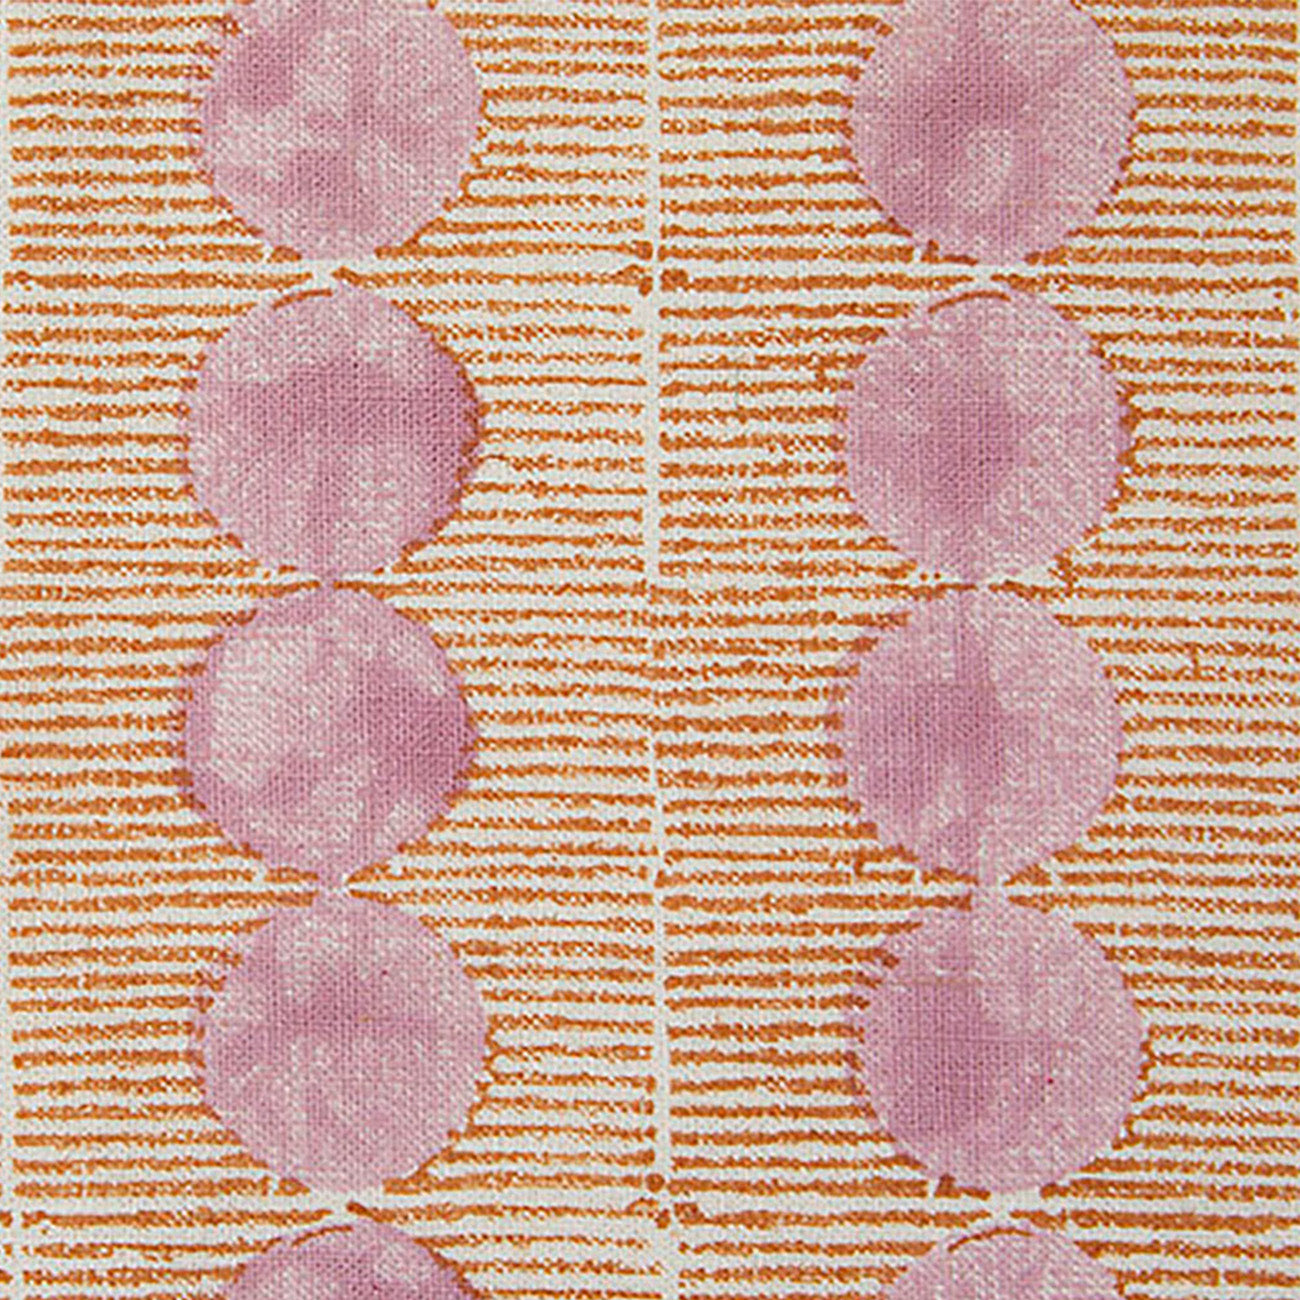 Fabric - Sun Rise - Oyster - Rose/Copper